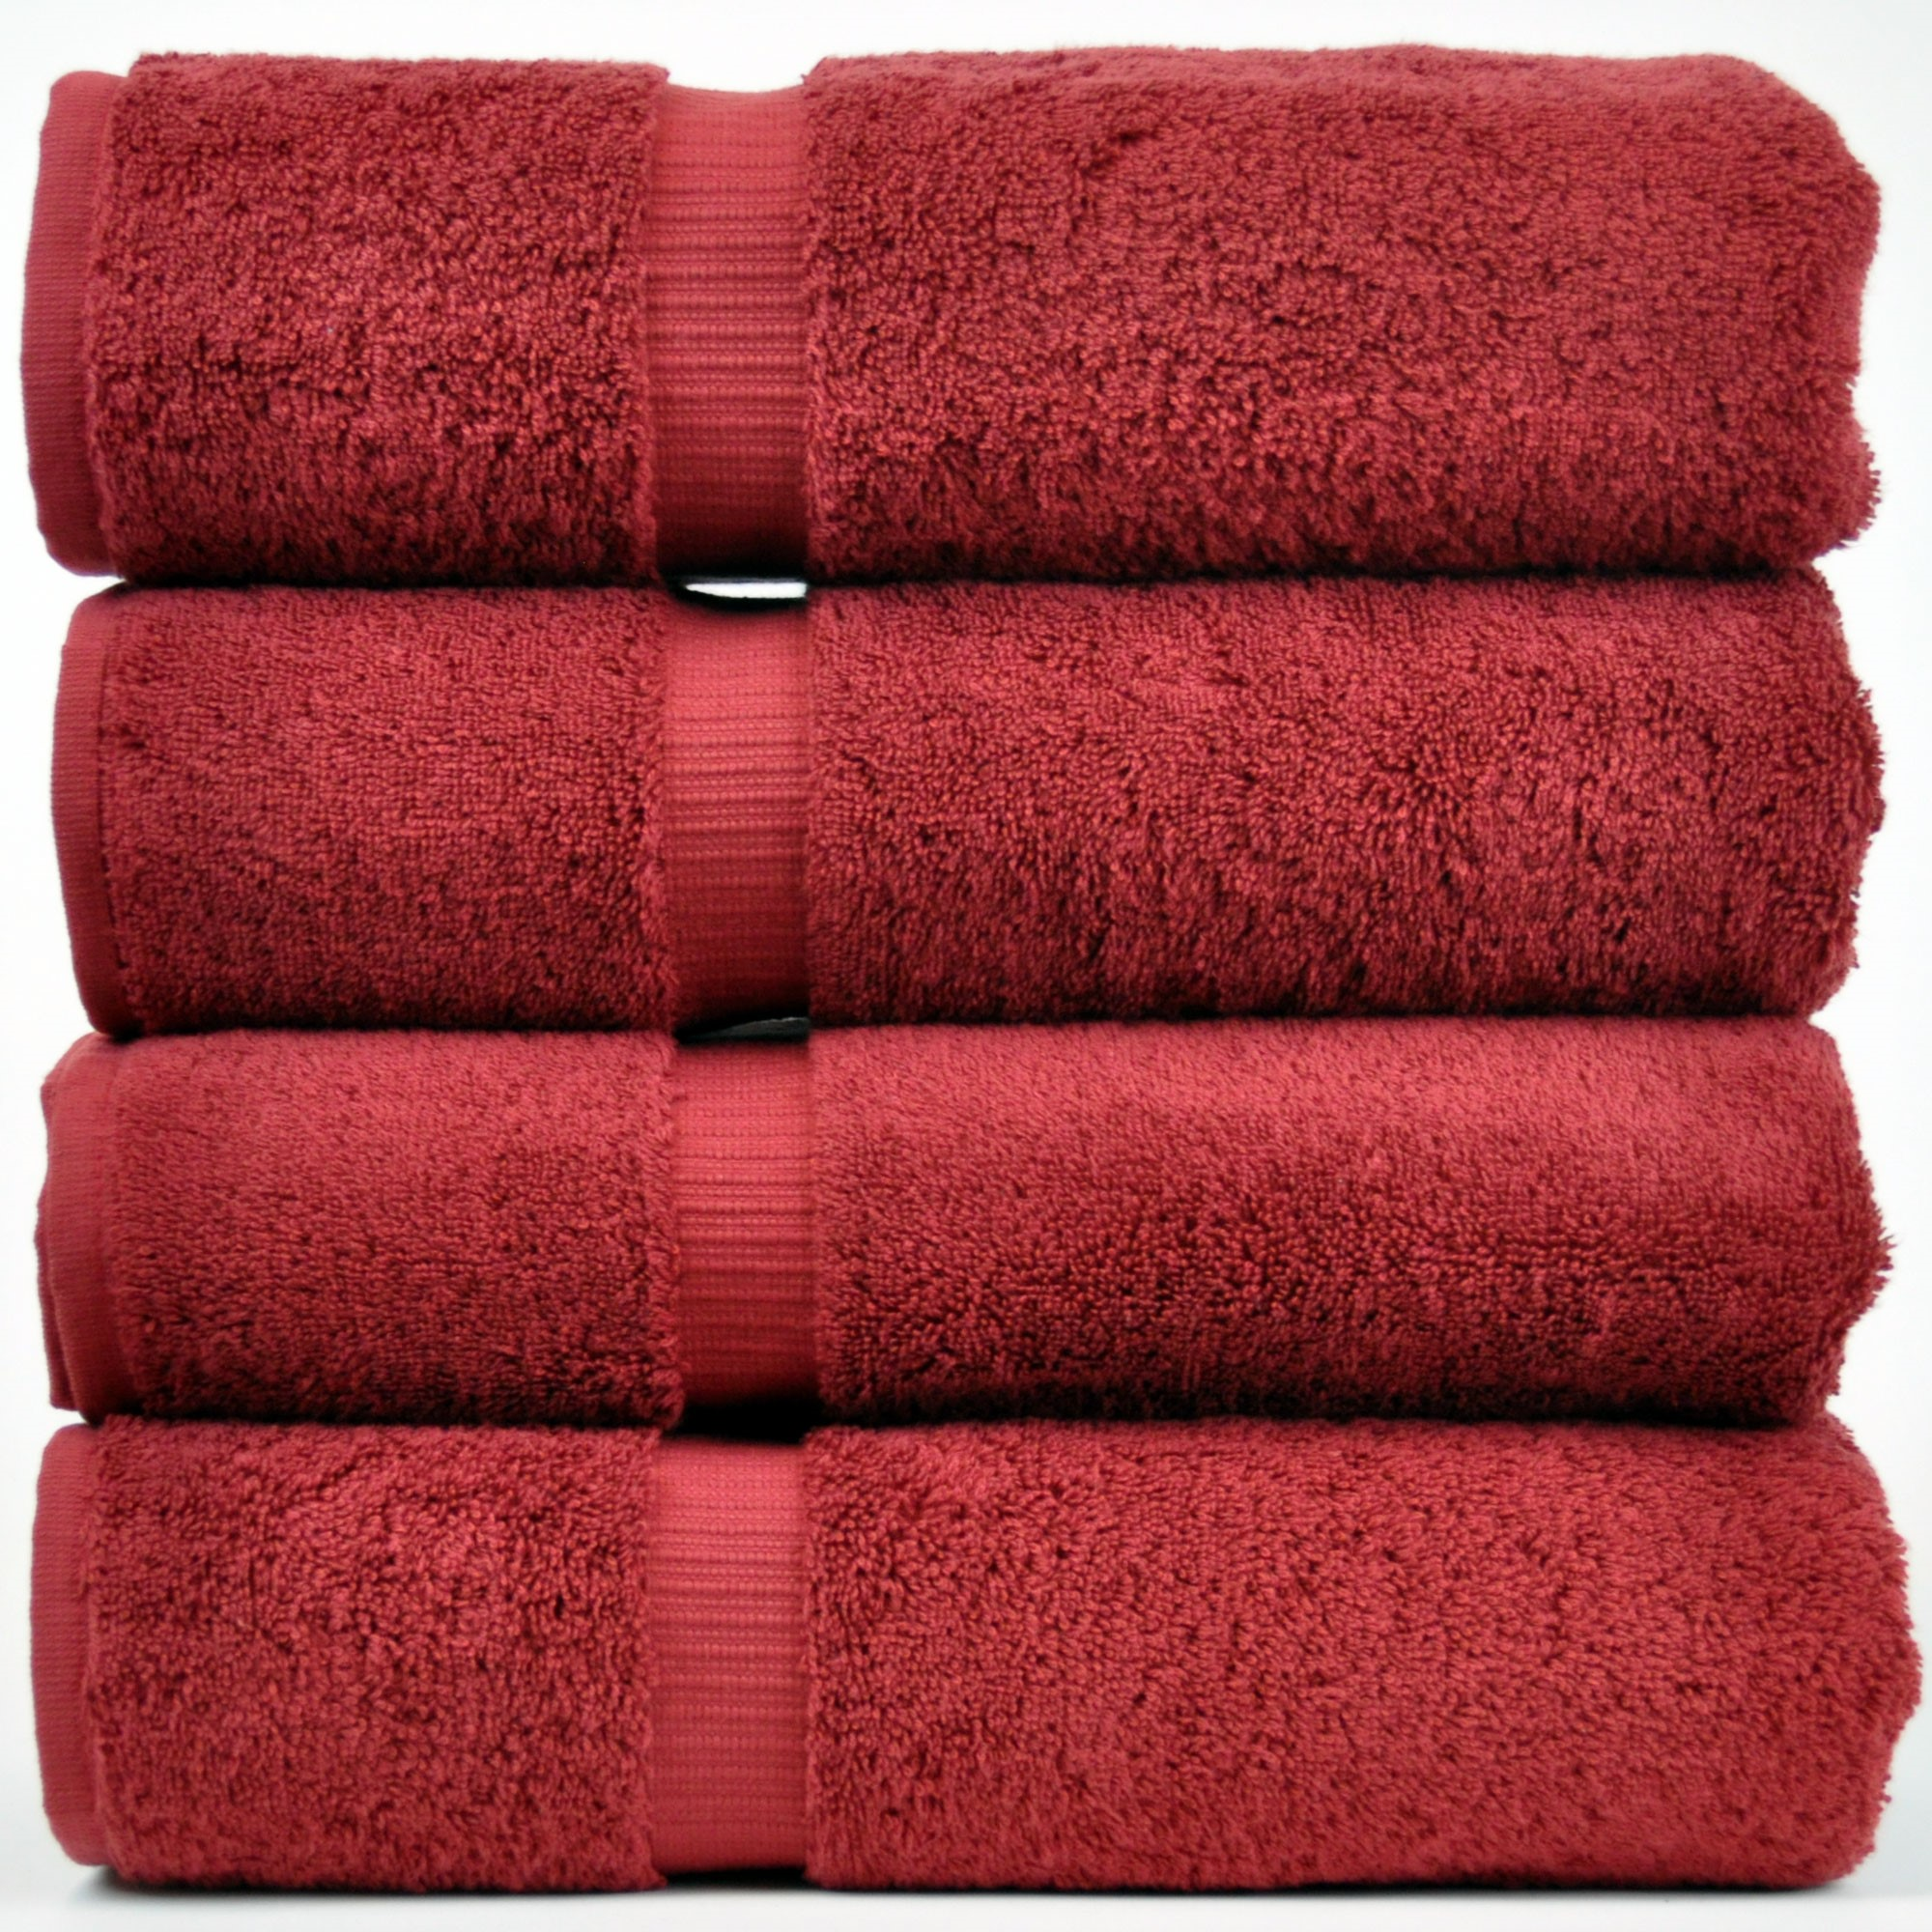 Chakir Linen Dobby Border Turkish Cotton Towel Set (Set of 4)